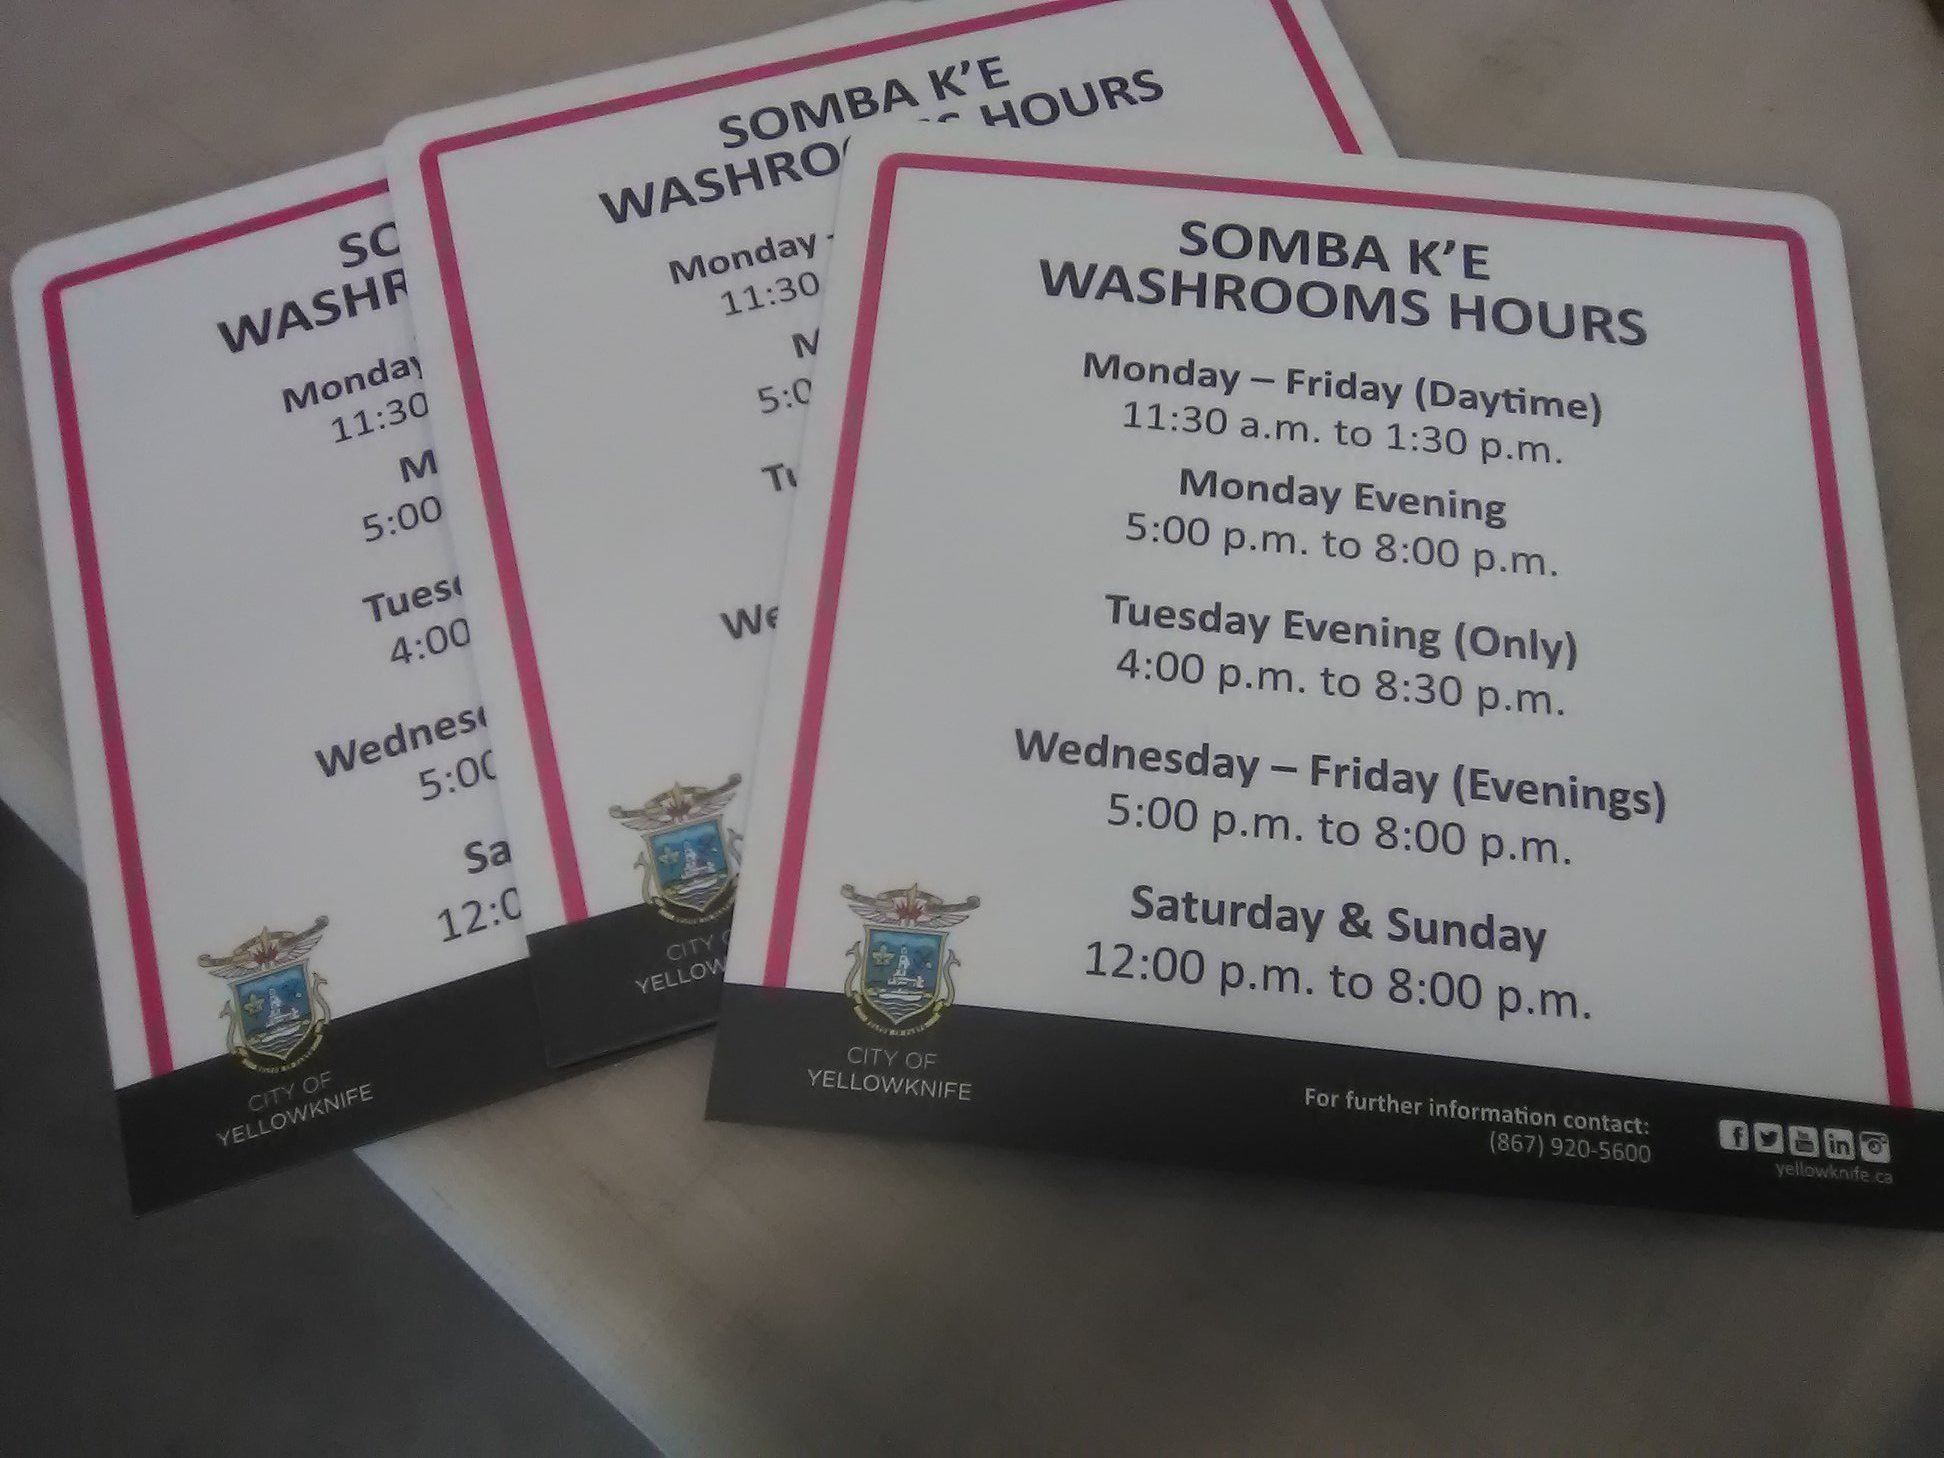 Washroom Hours Signage